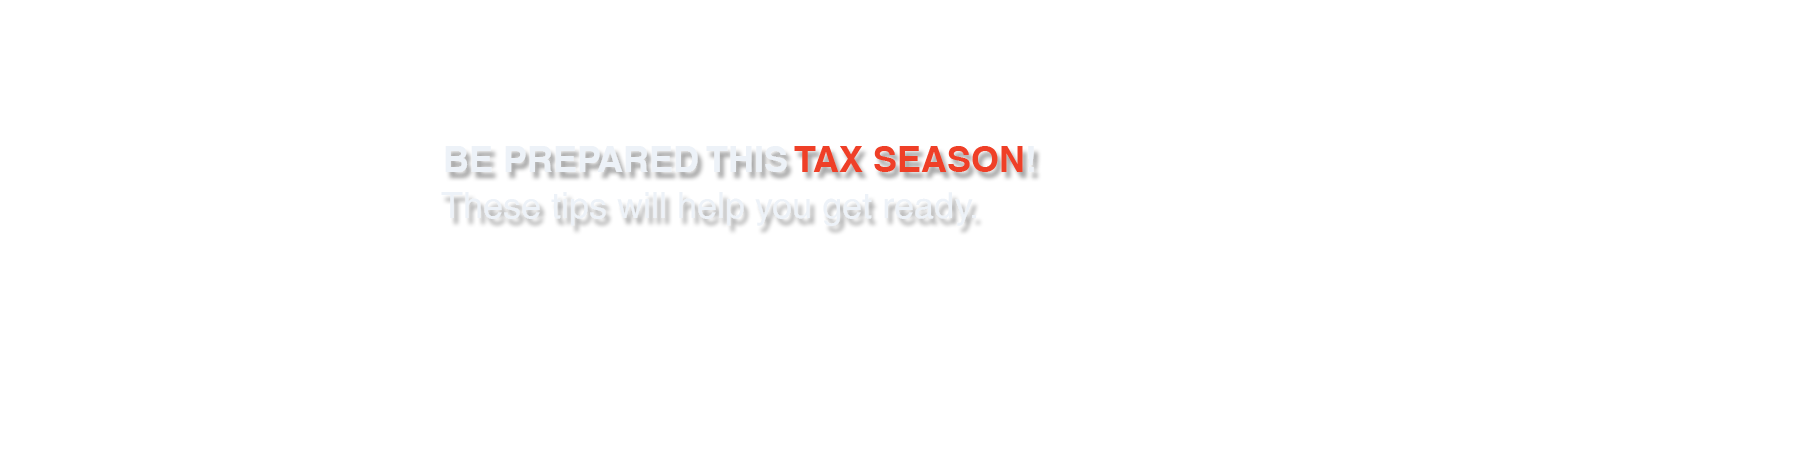 Be prepared this tax season